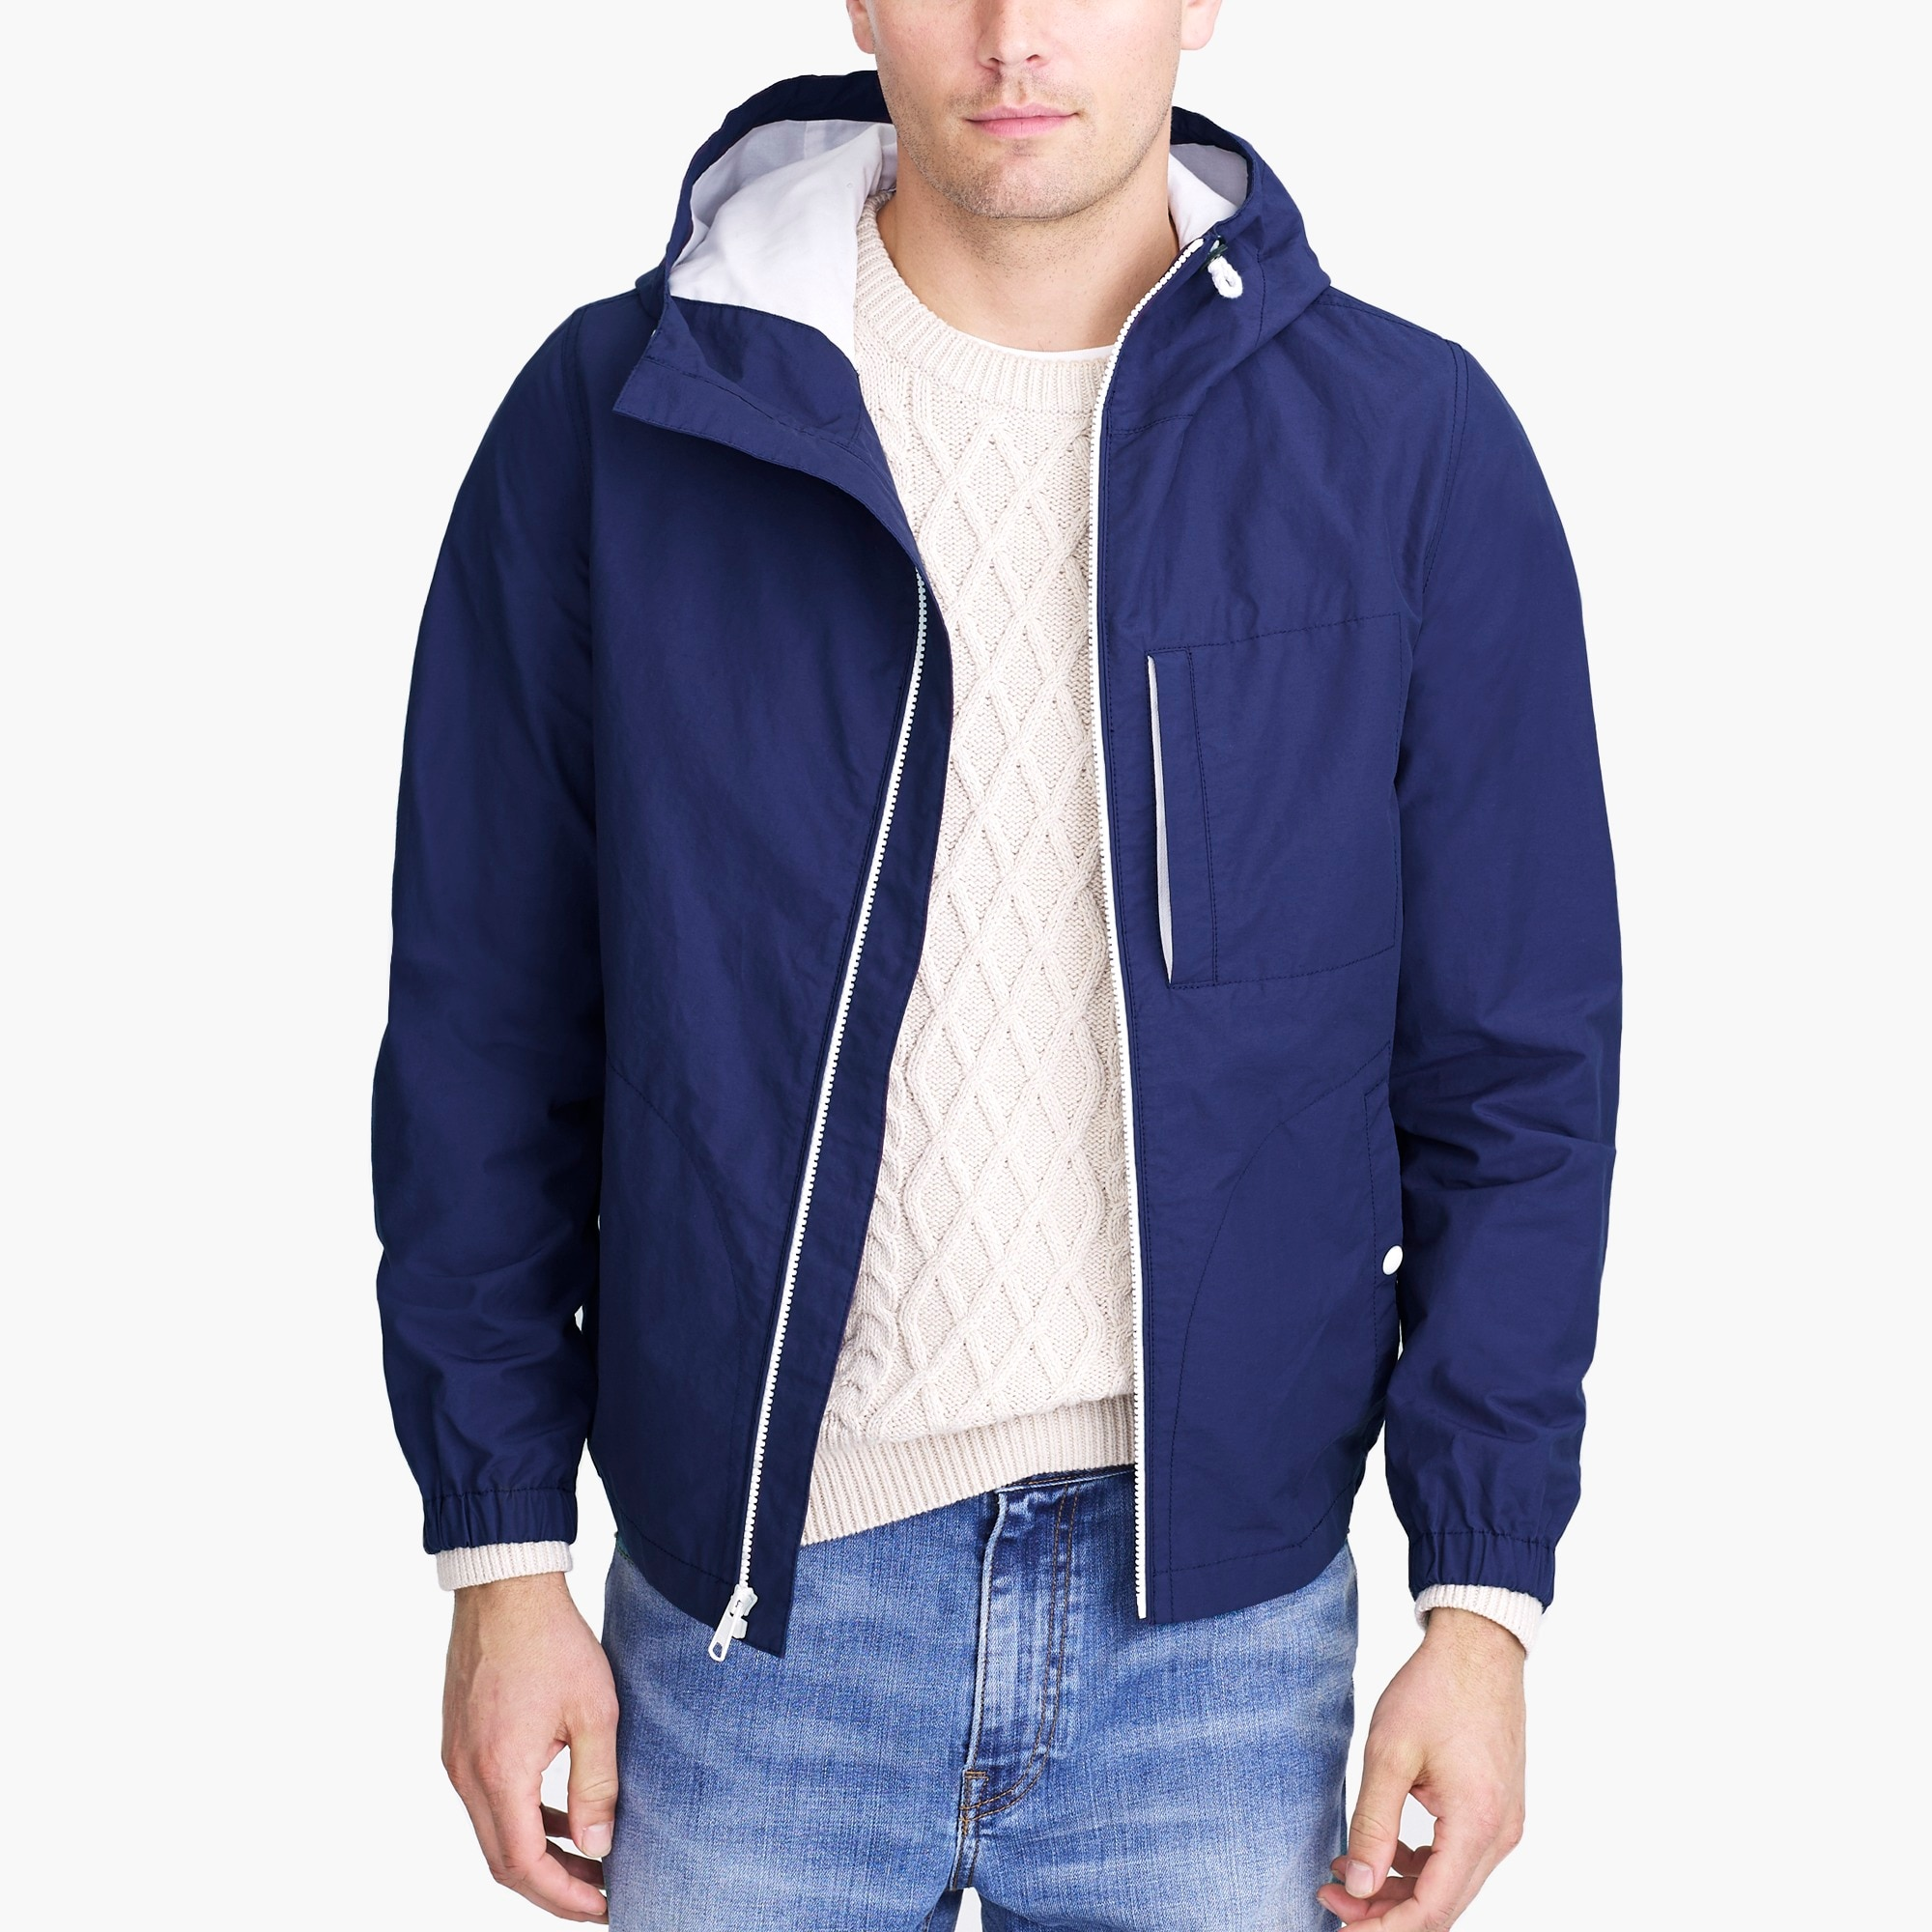 fleet jacket : factorymen jackets